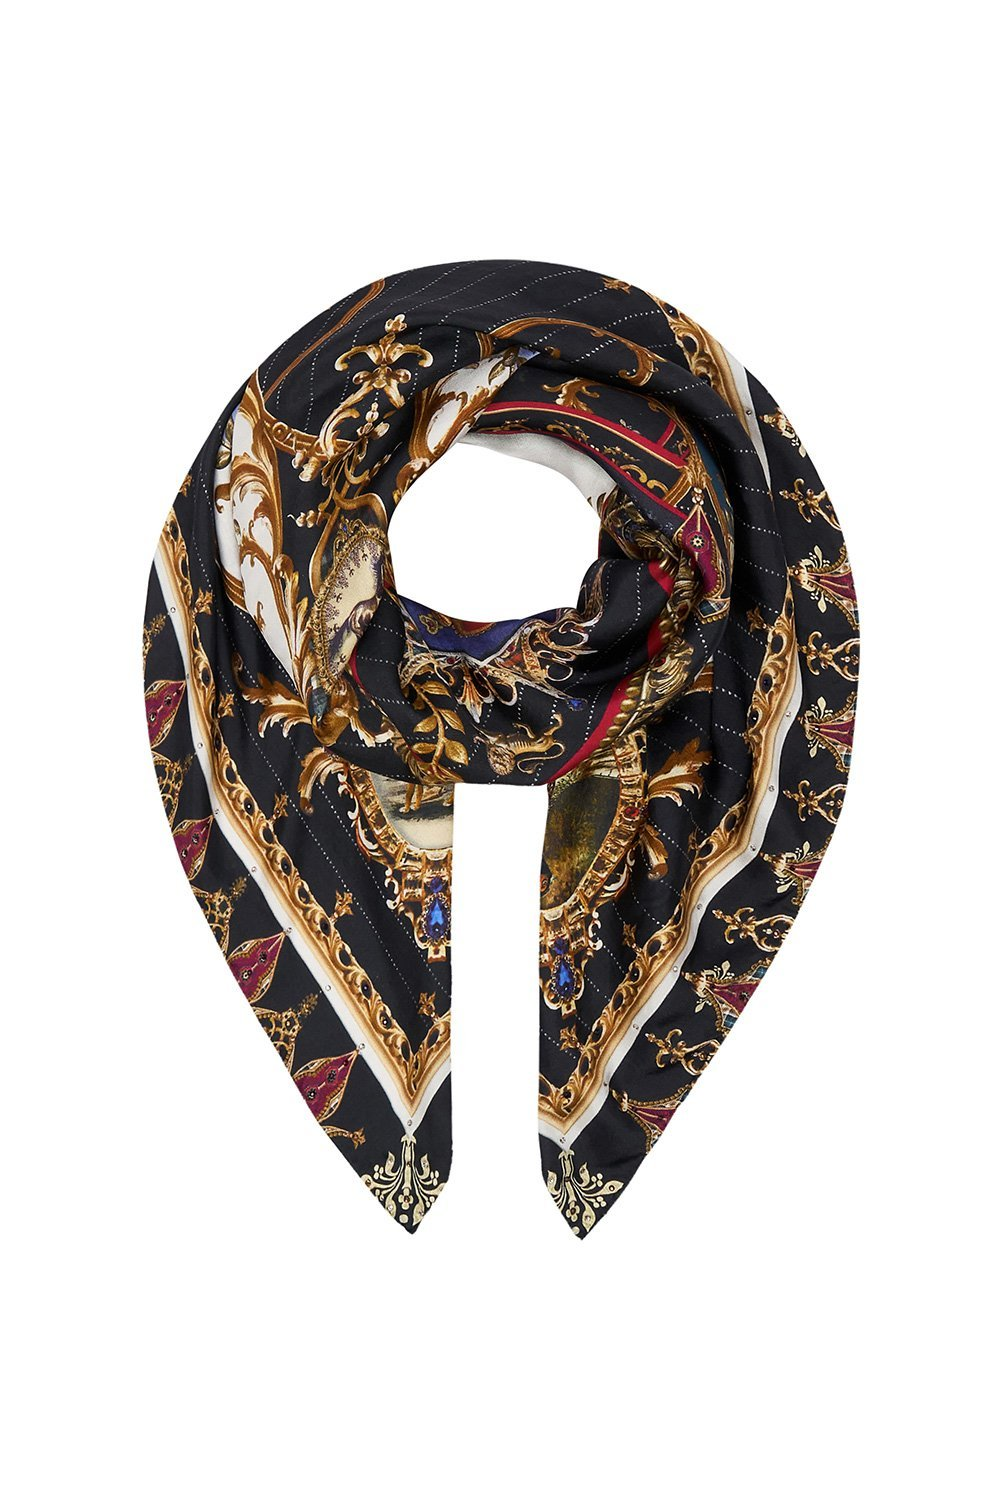 LARGE SQUARE SCARF DINING HALL DARLING